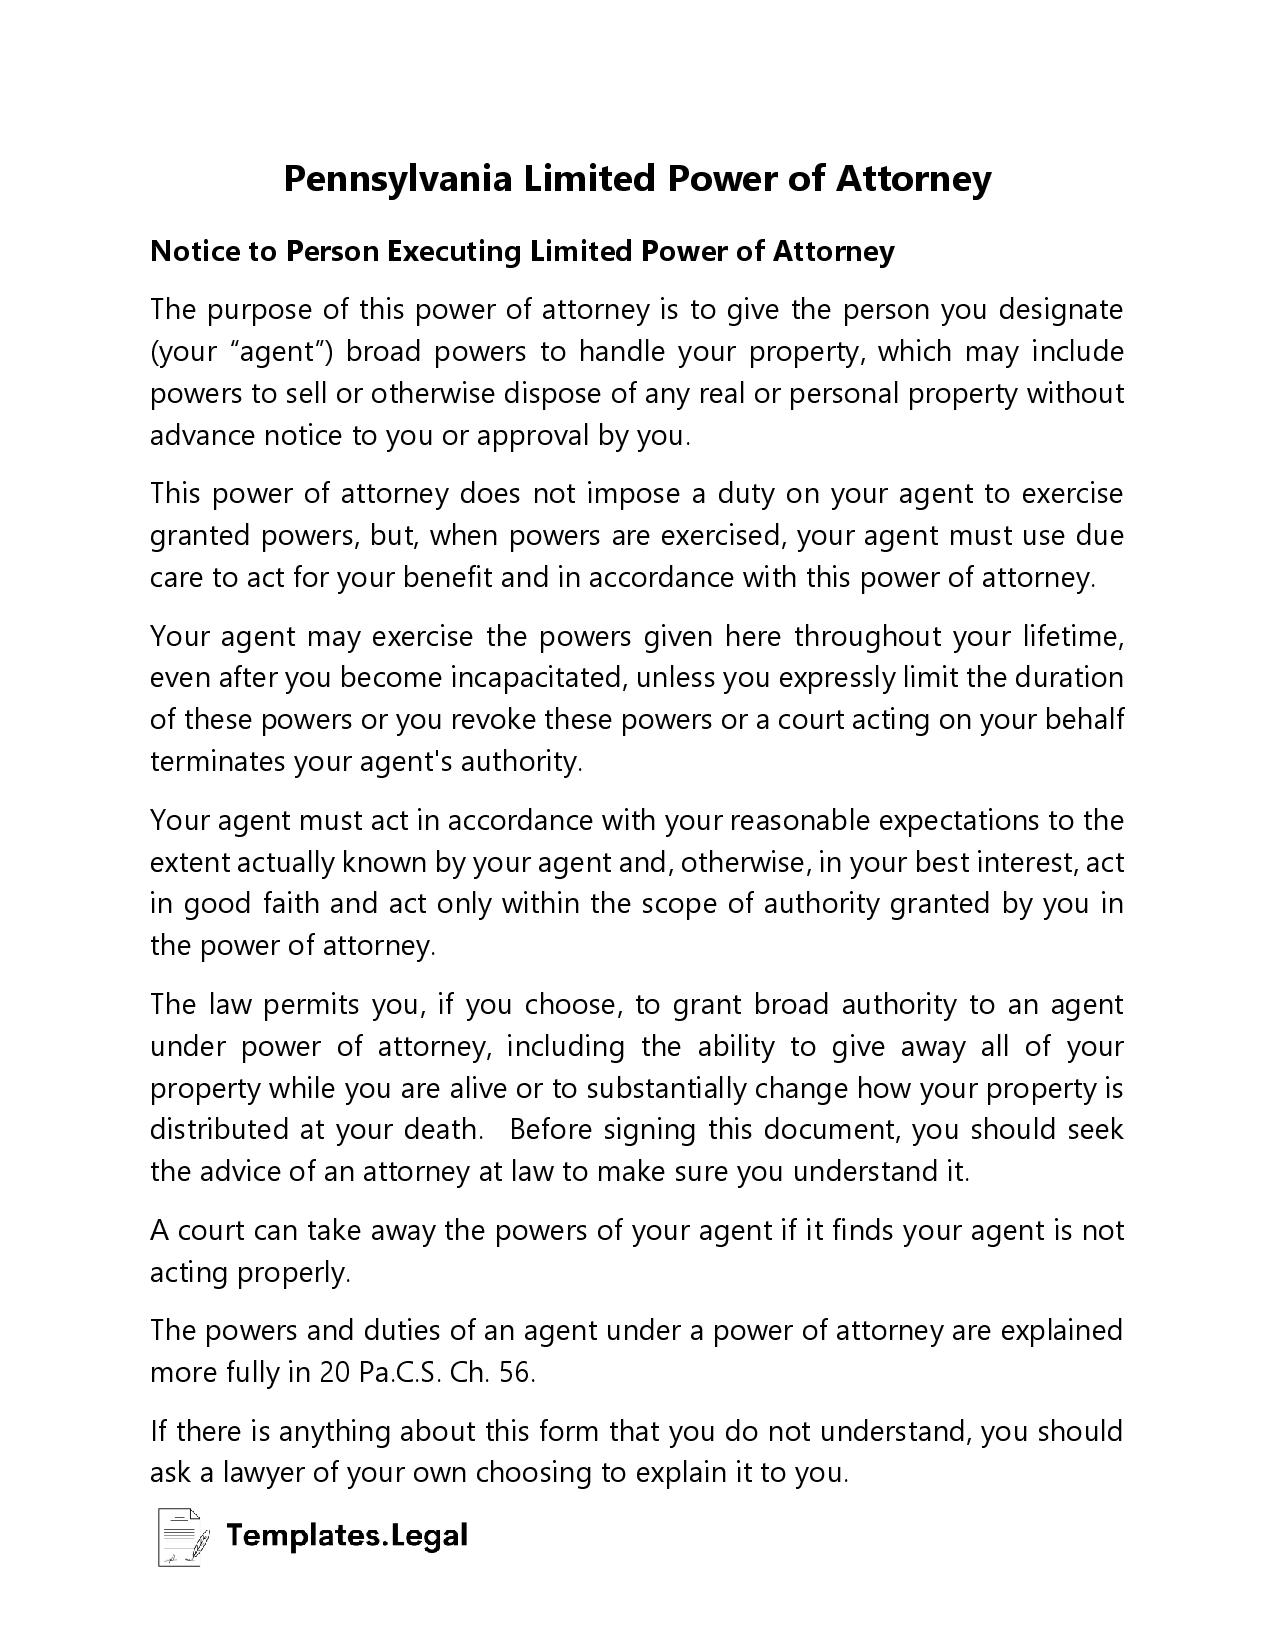 Pennsylvania Limited Power of Attorney - Templates.Legal